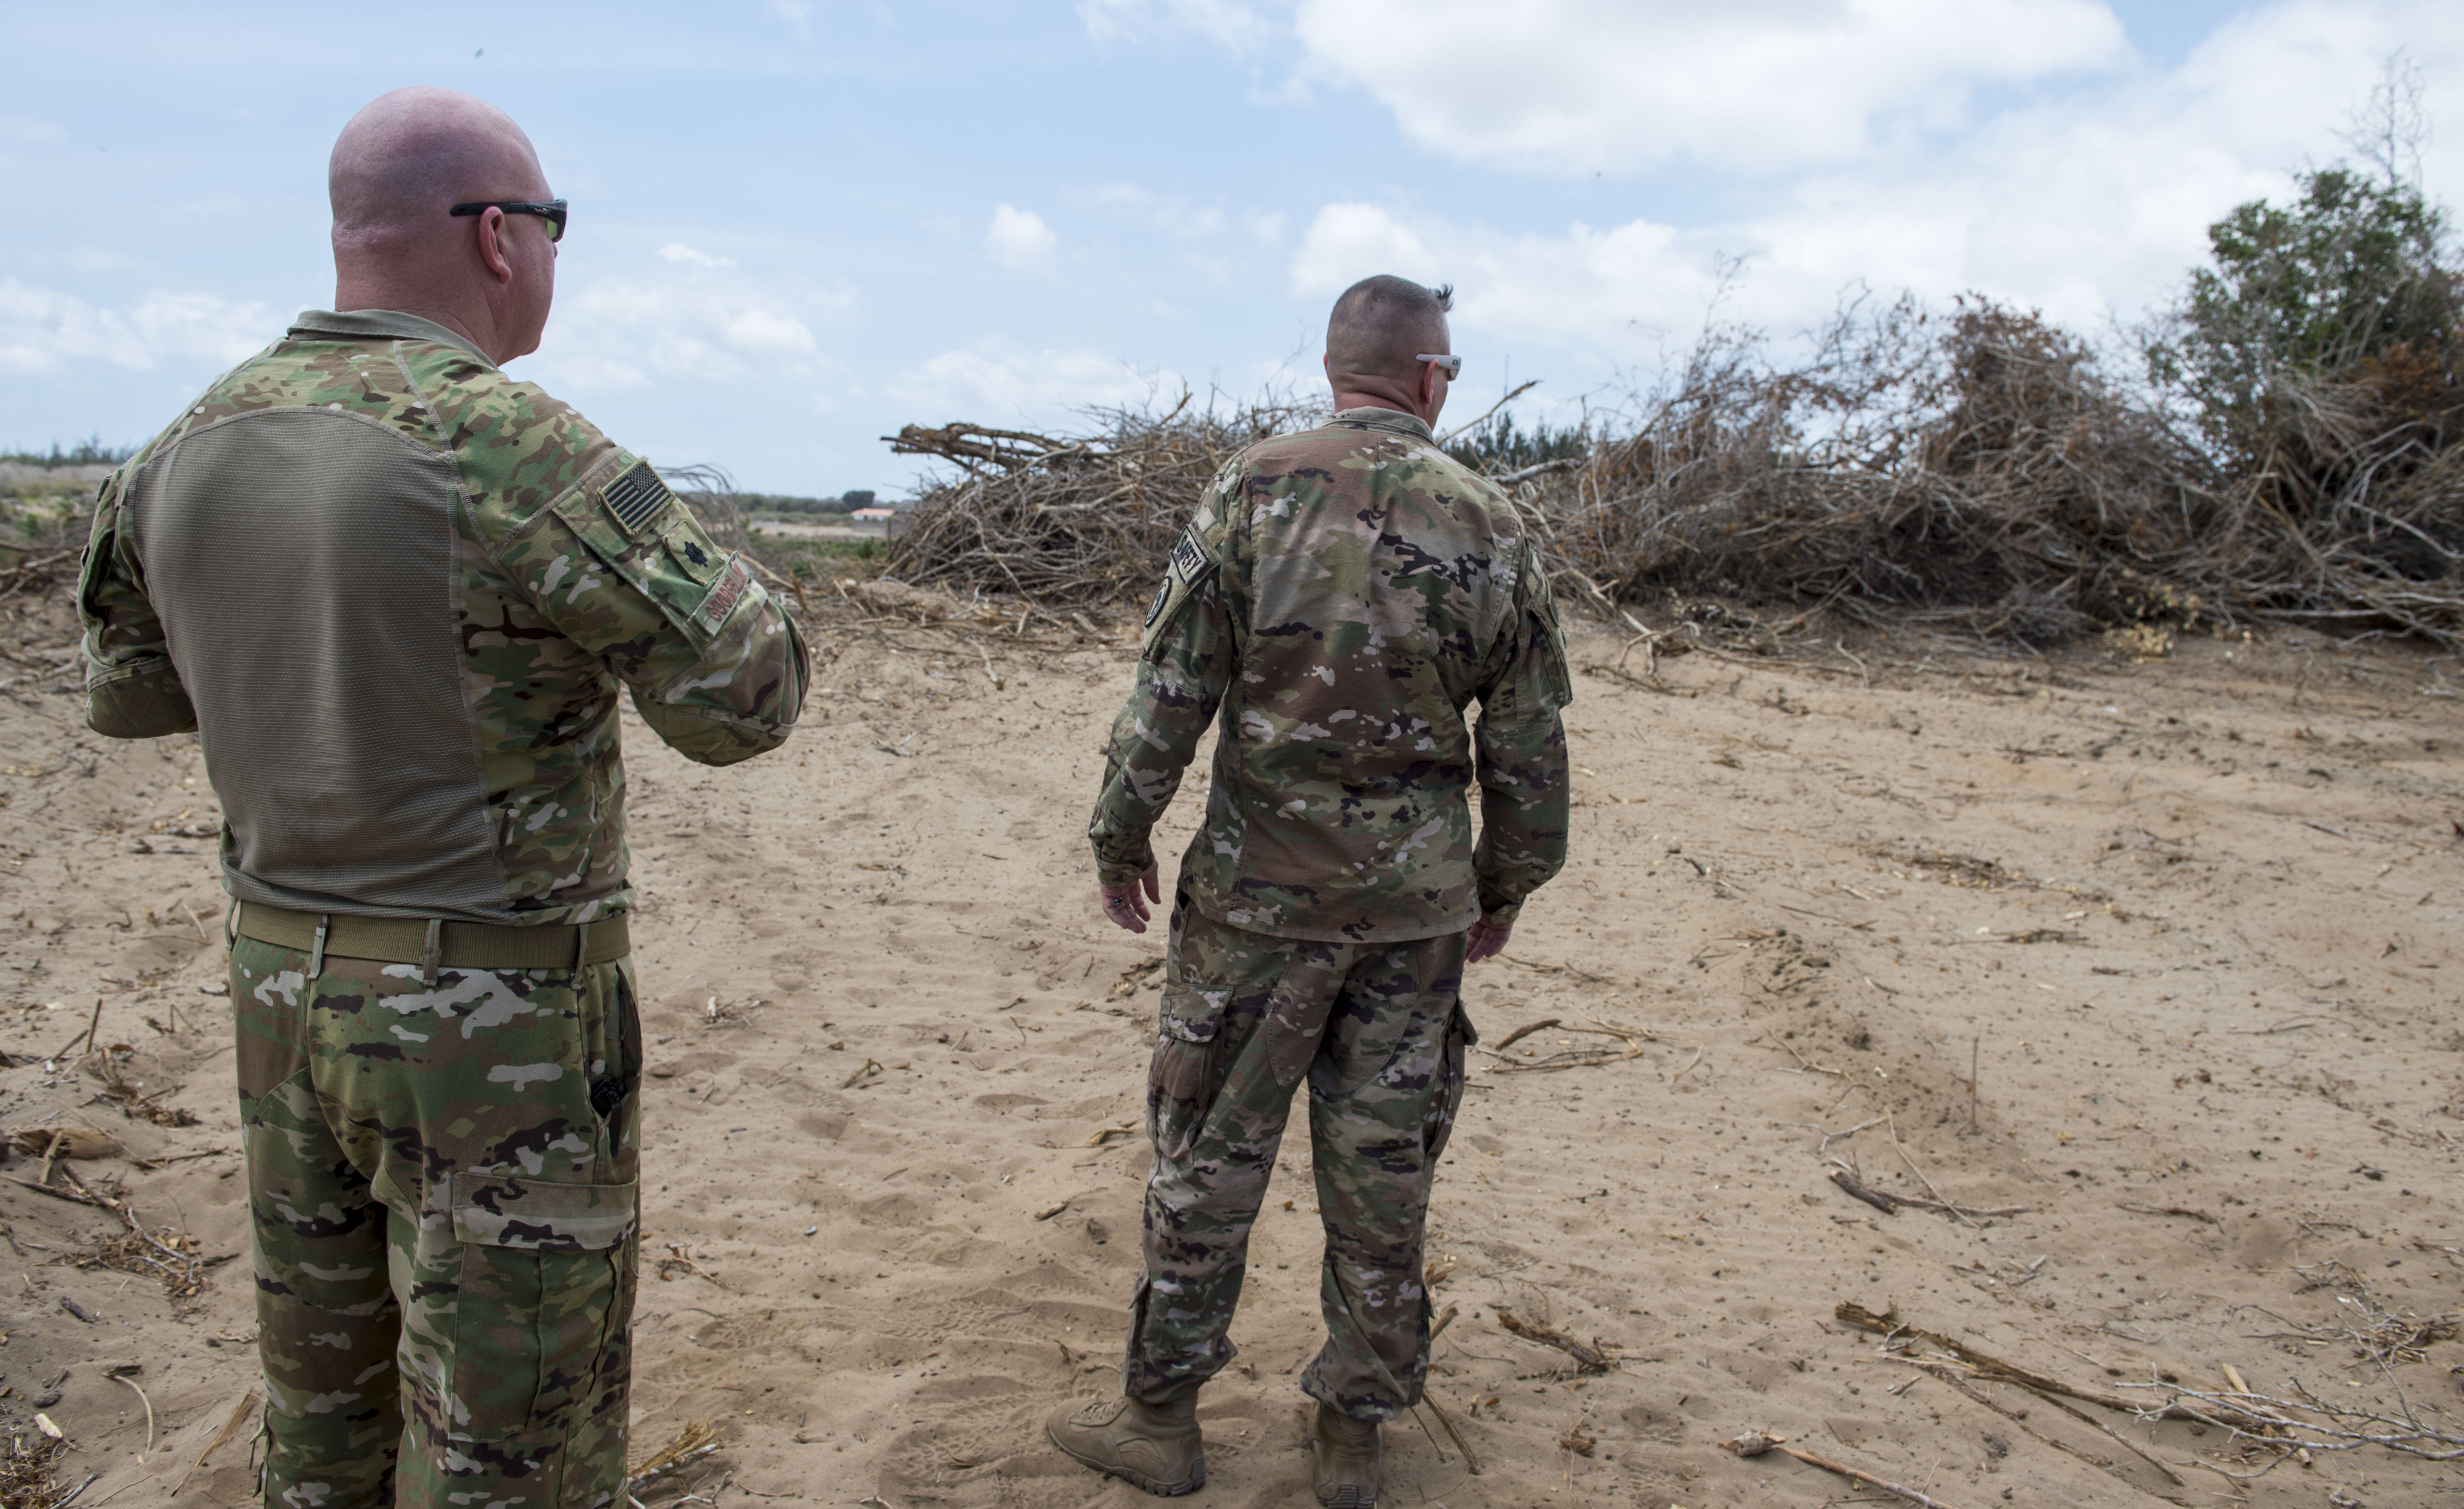 U.S. Air Force Lt. Col. Vance Goodfellow, left, 475th Expeditionary Air Base Squadron (EABS) commander, and U.S. Army Lt. Col. Todd Martin, safety officer assigned to the Combined Joint Task Force - Horn of Africa (CJTF-HOA) Safety directorate, look at trees that are being cleared during a battlefield circulation site visit at Camp Simba in Manda Bay, Kenya, Feb. 24, 2018. Camp Simba is currently operated by the 475th EABS, who fall under the 435th Air Expeditionary Wing, but the property hosts CJTF-HOA personnel and is in the CJTF-HOA area of operations. As such, the CJTF-HOA Safety and Inspector General offices provide support to the service members, Department of Defense civilians, and local national contractors who work on the camp. (U.S. Air Force photo by Staff Sgt. Timothy Moore)